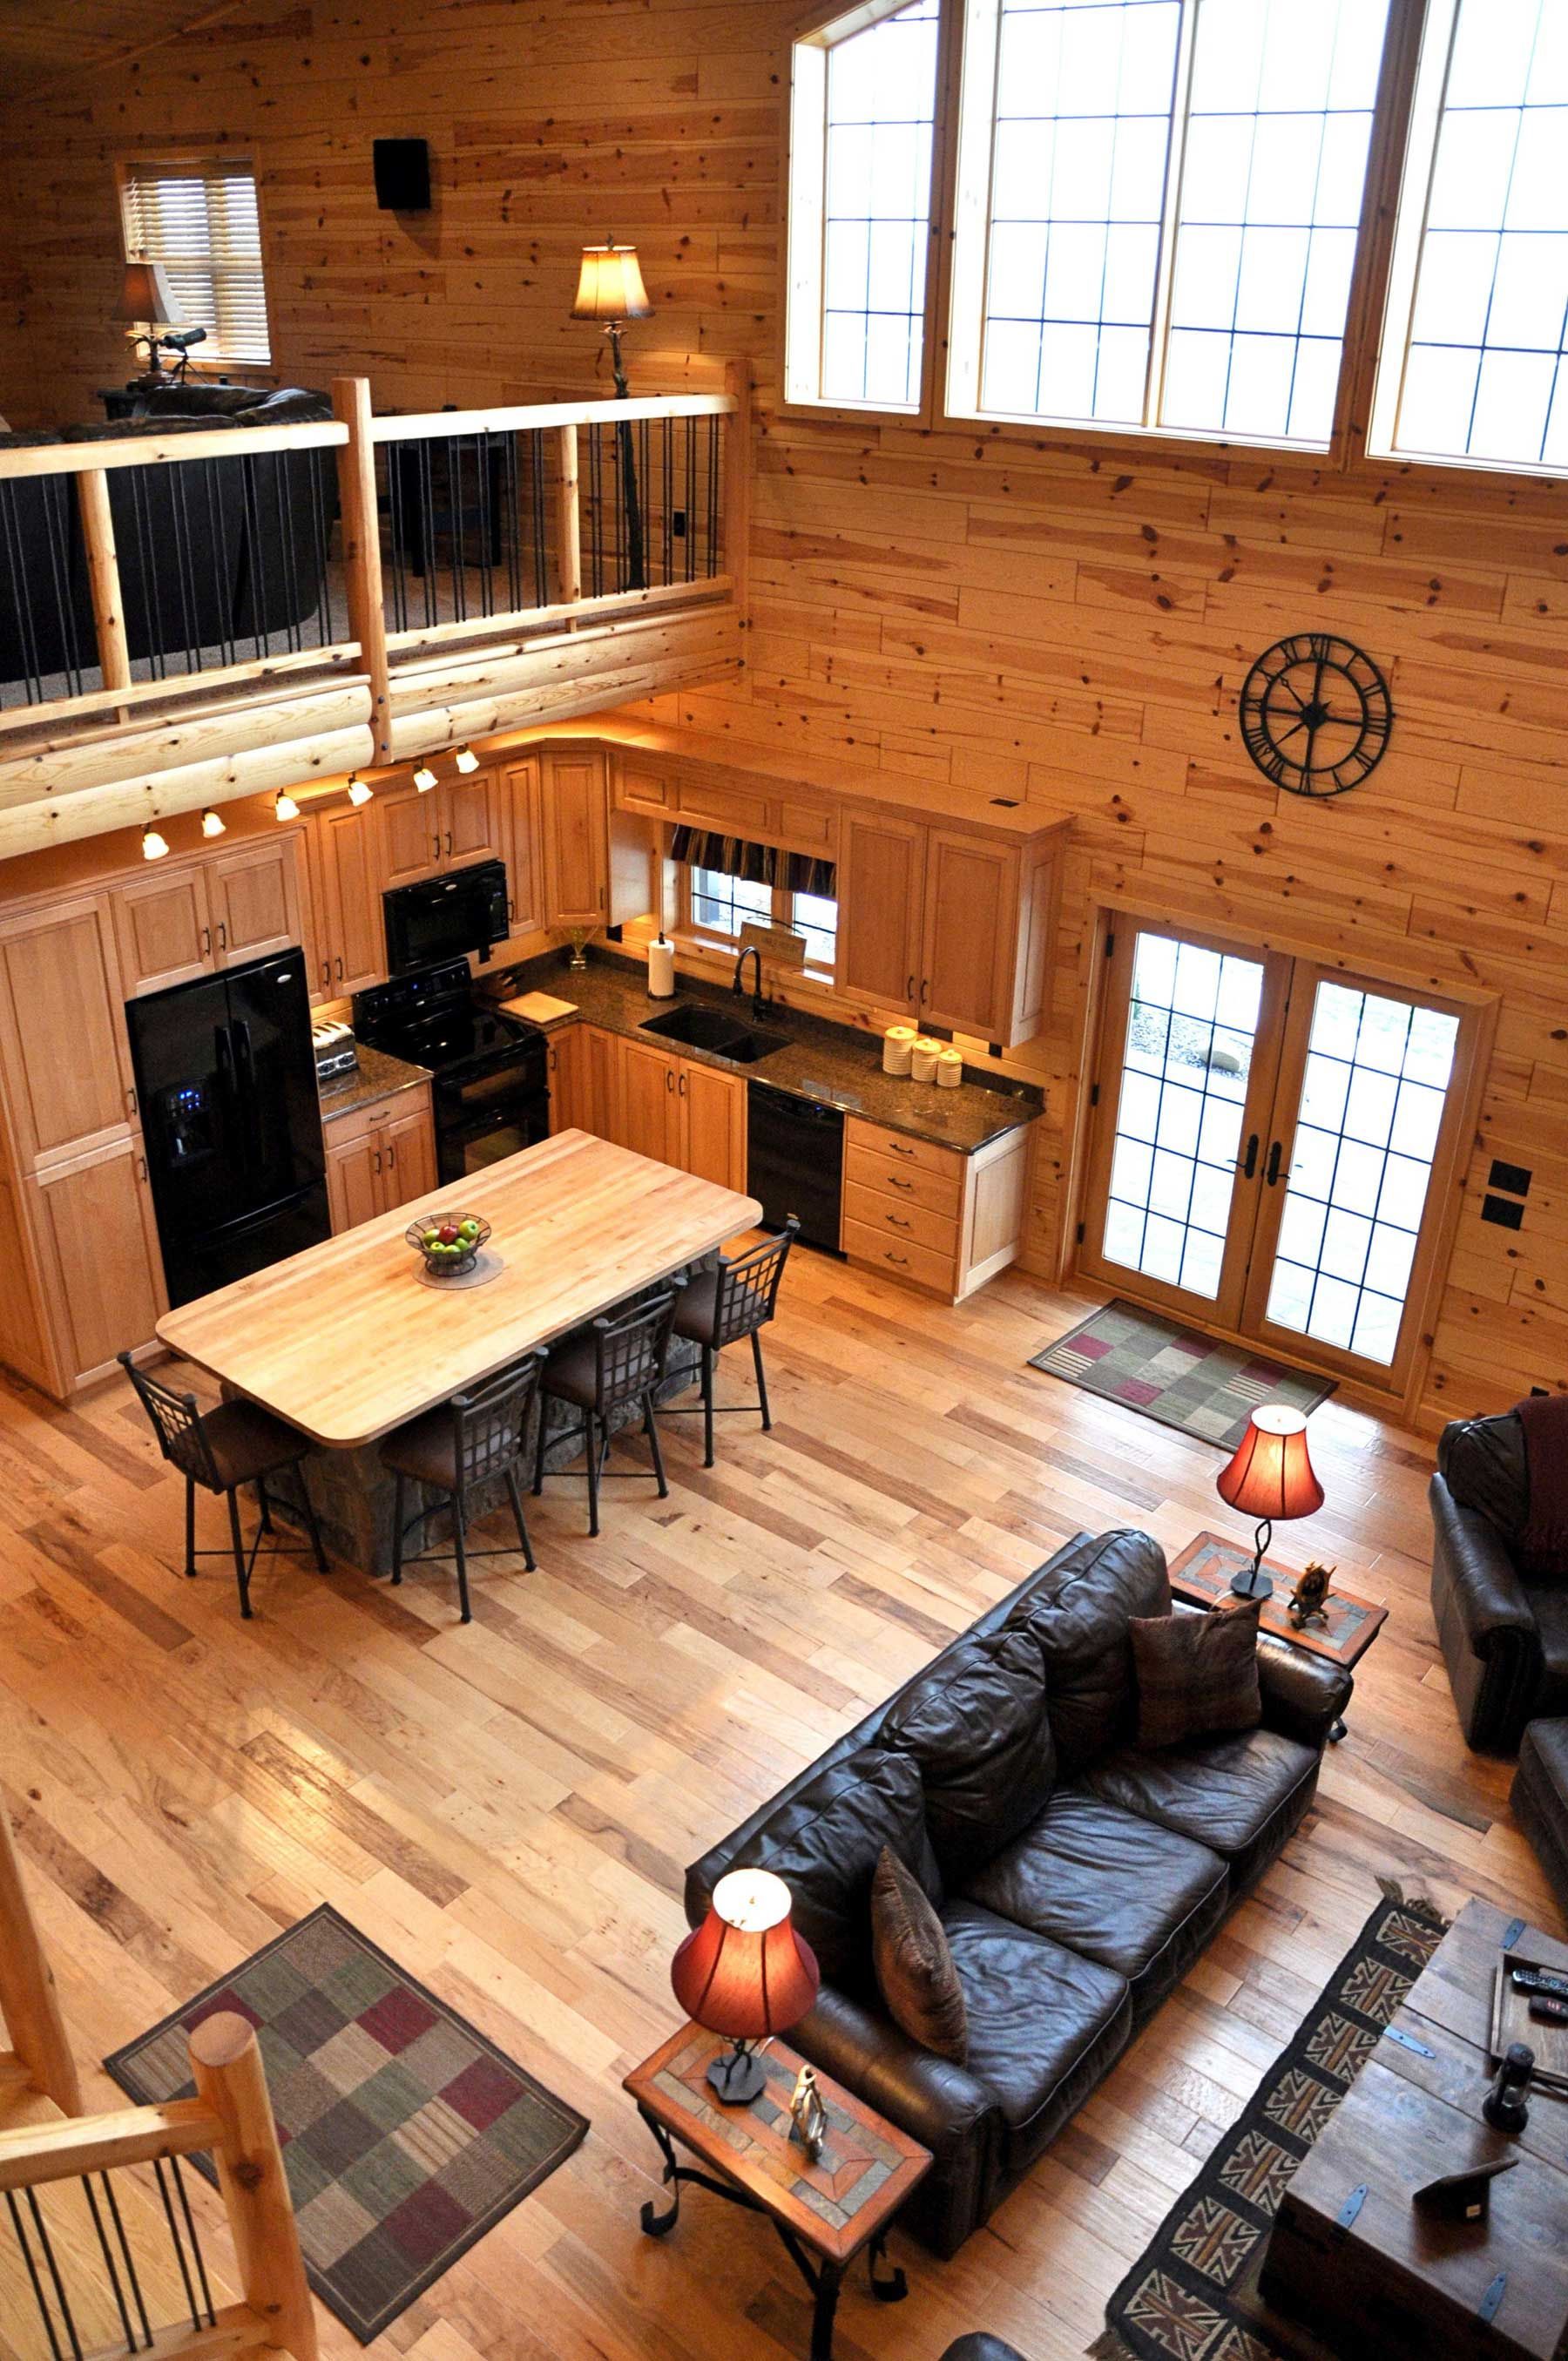 Ideas For Rooms With Wood Paneling: Log Home & Cabin Pictures